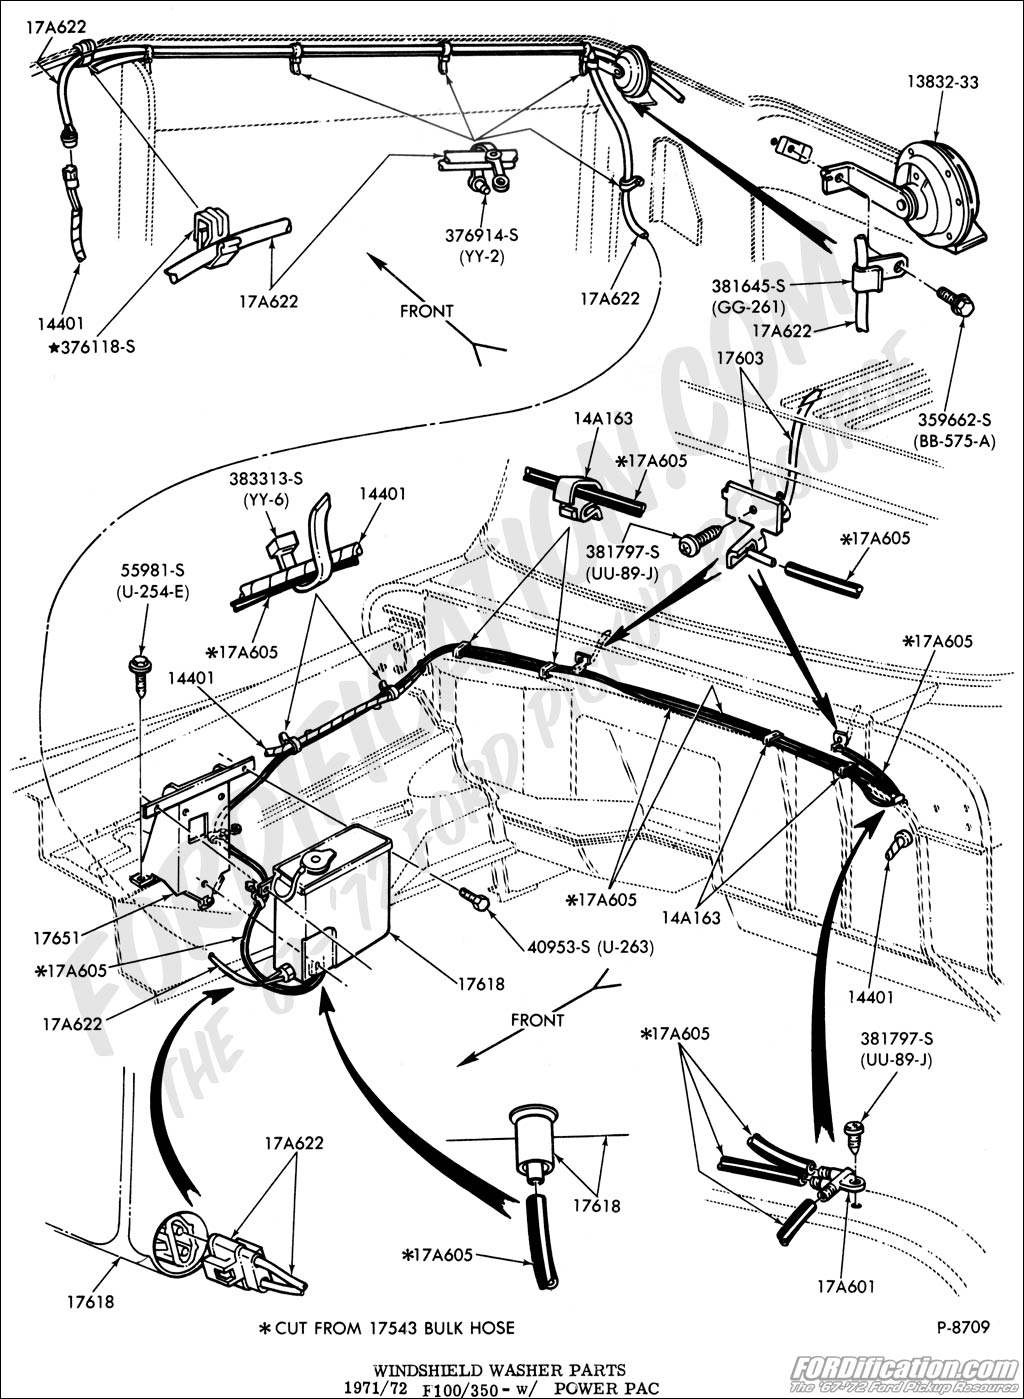 Ford Truck Drawing At Free For Personal Use 1989 Mustang Dash Wiring Diagram 1024x1399 Technical Drawings And Schematics